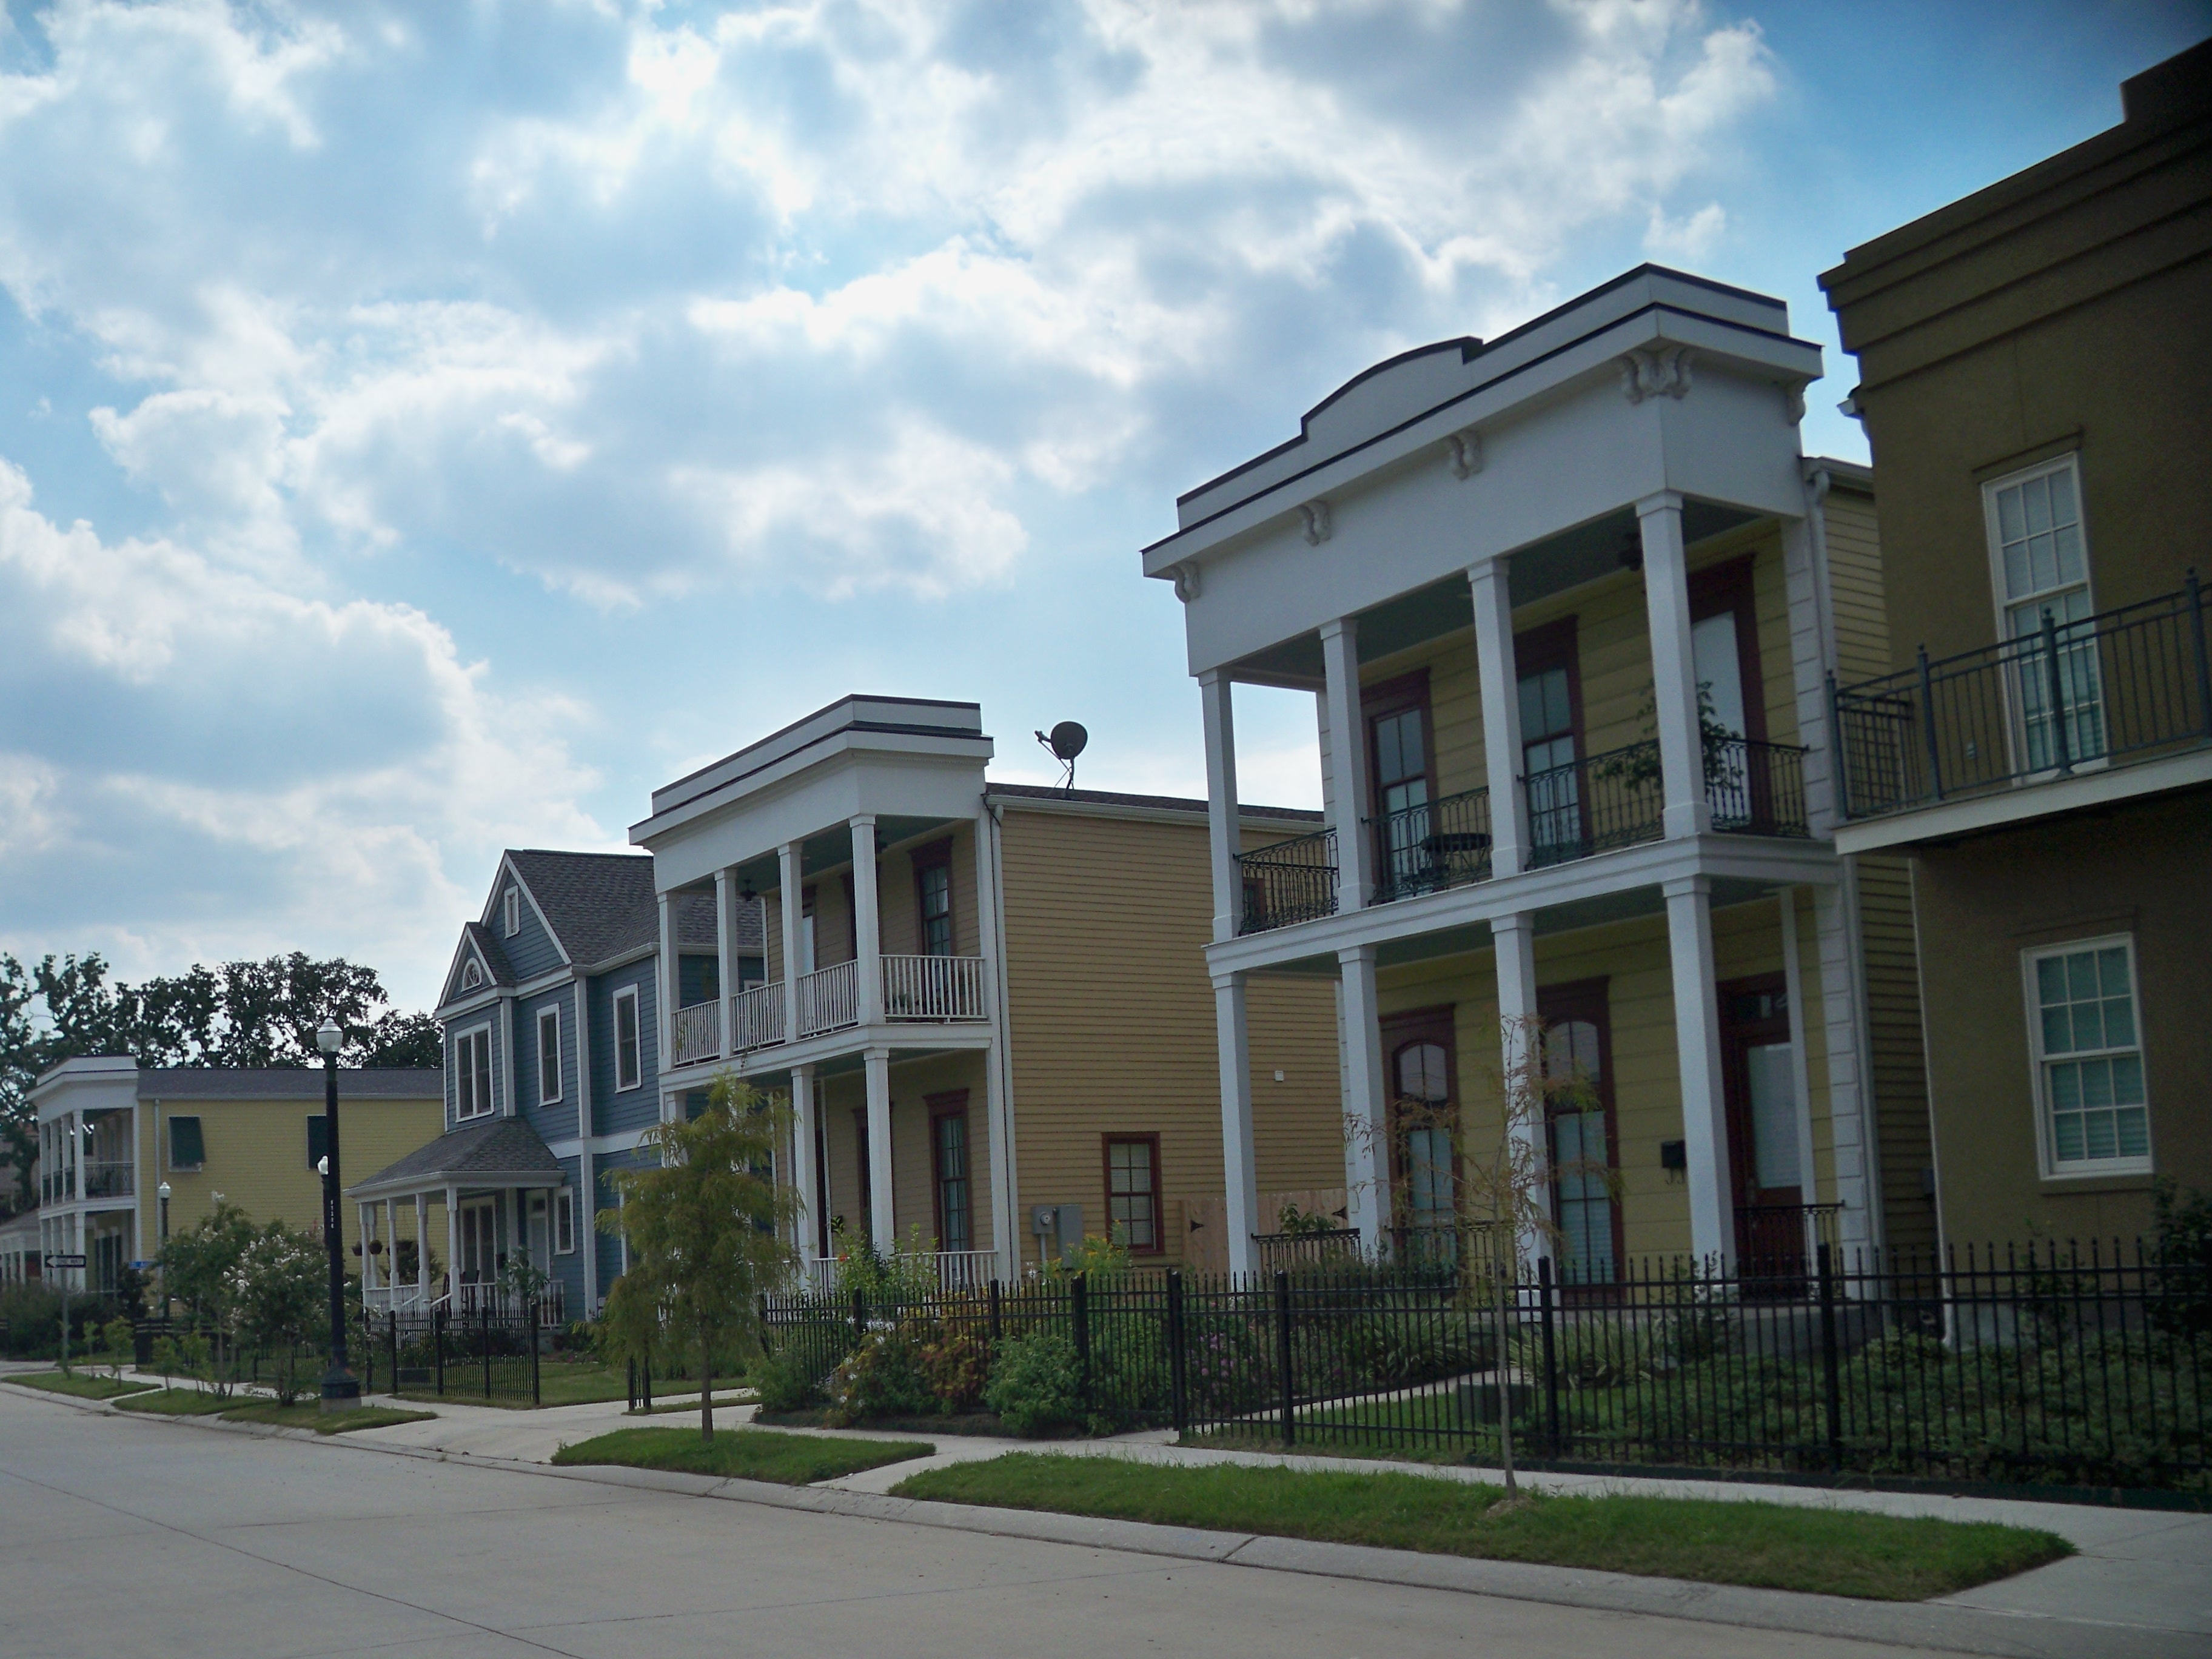 Houses in the St. Thomas Development